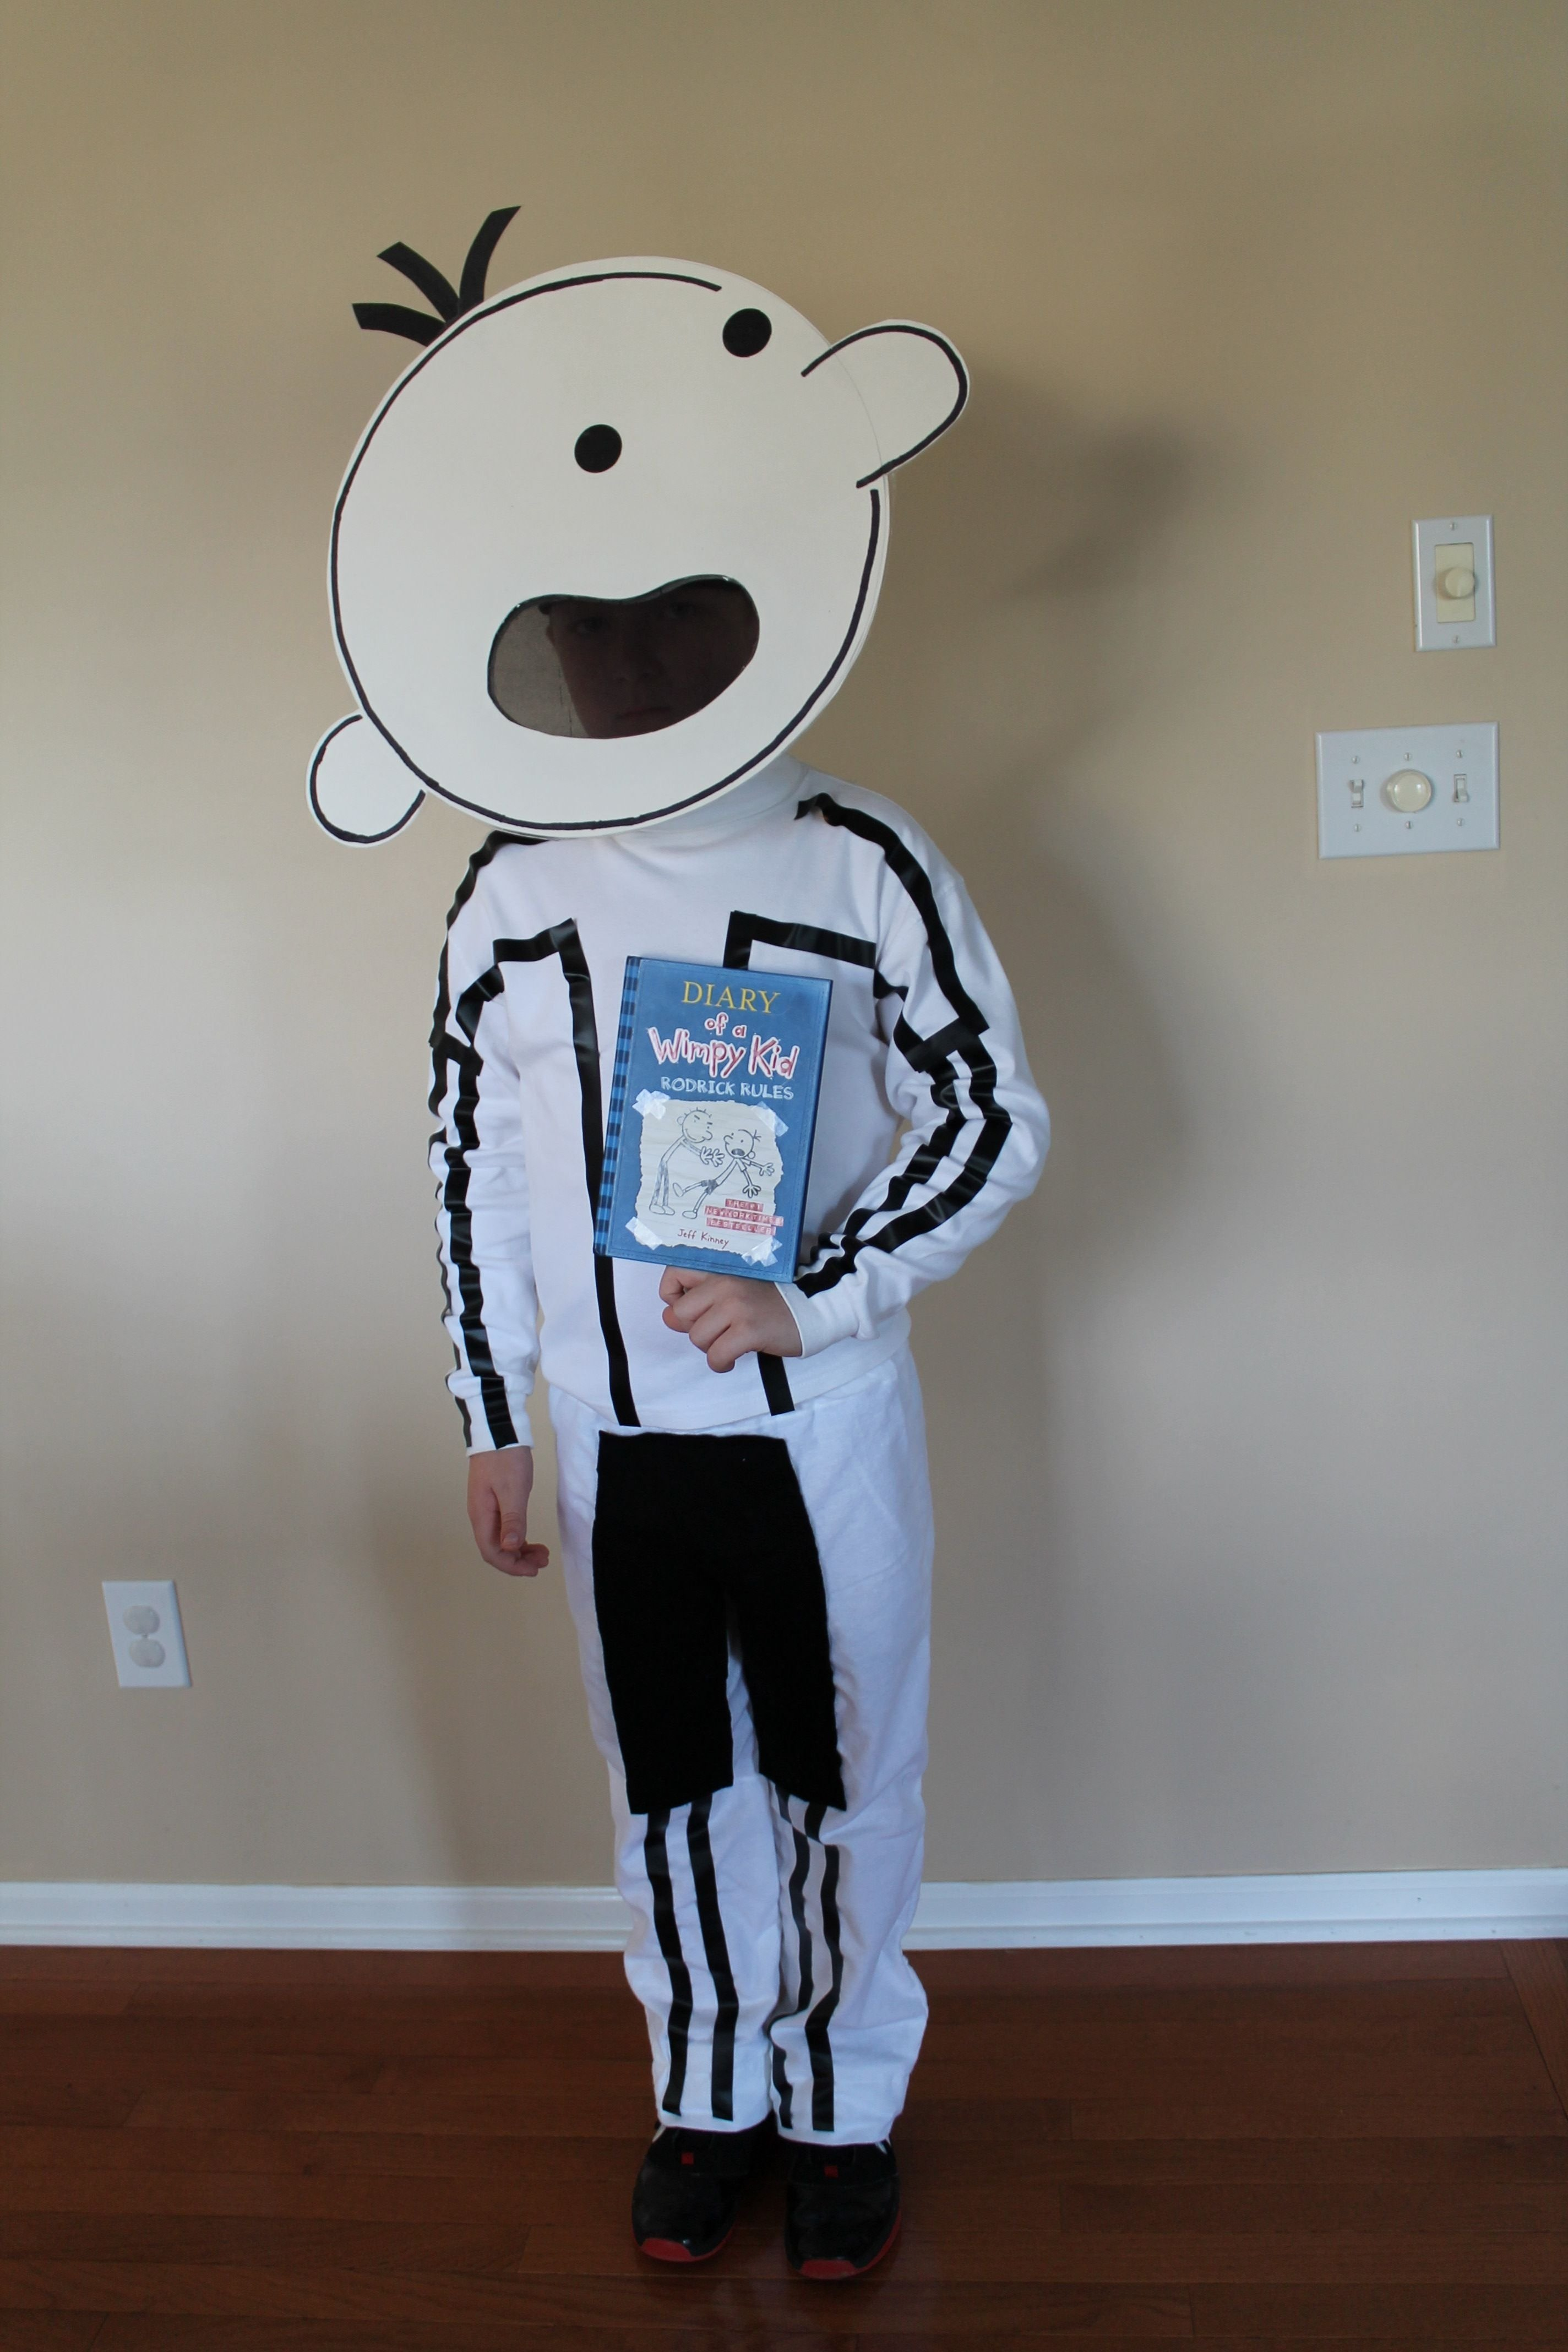 10 Gorgeous Diary Of A Wimpy Kid Costume Ideas diary of a wimpy kid halloween costume electrical tape and a tag 2020